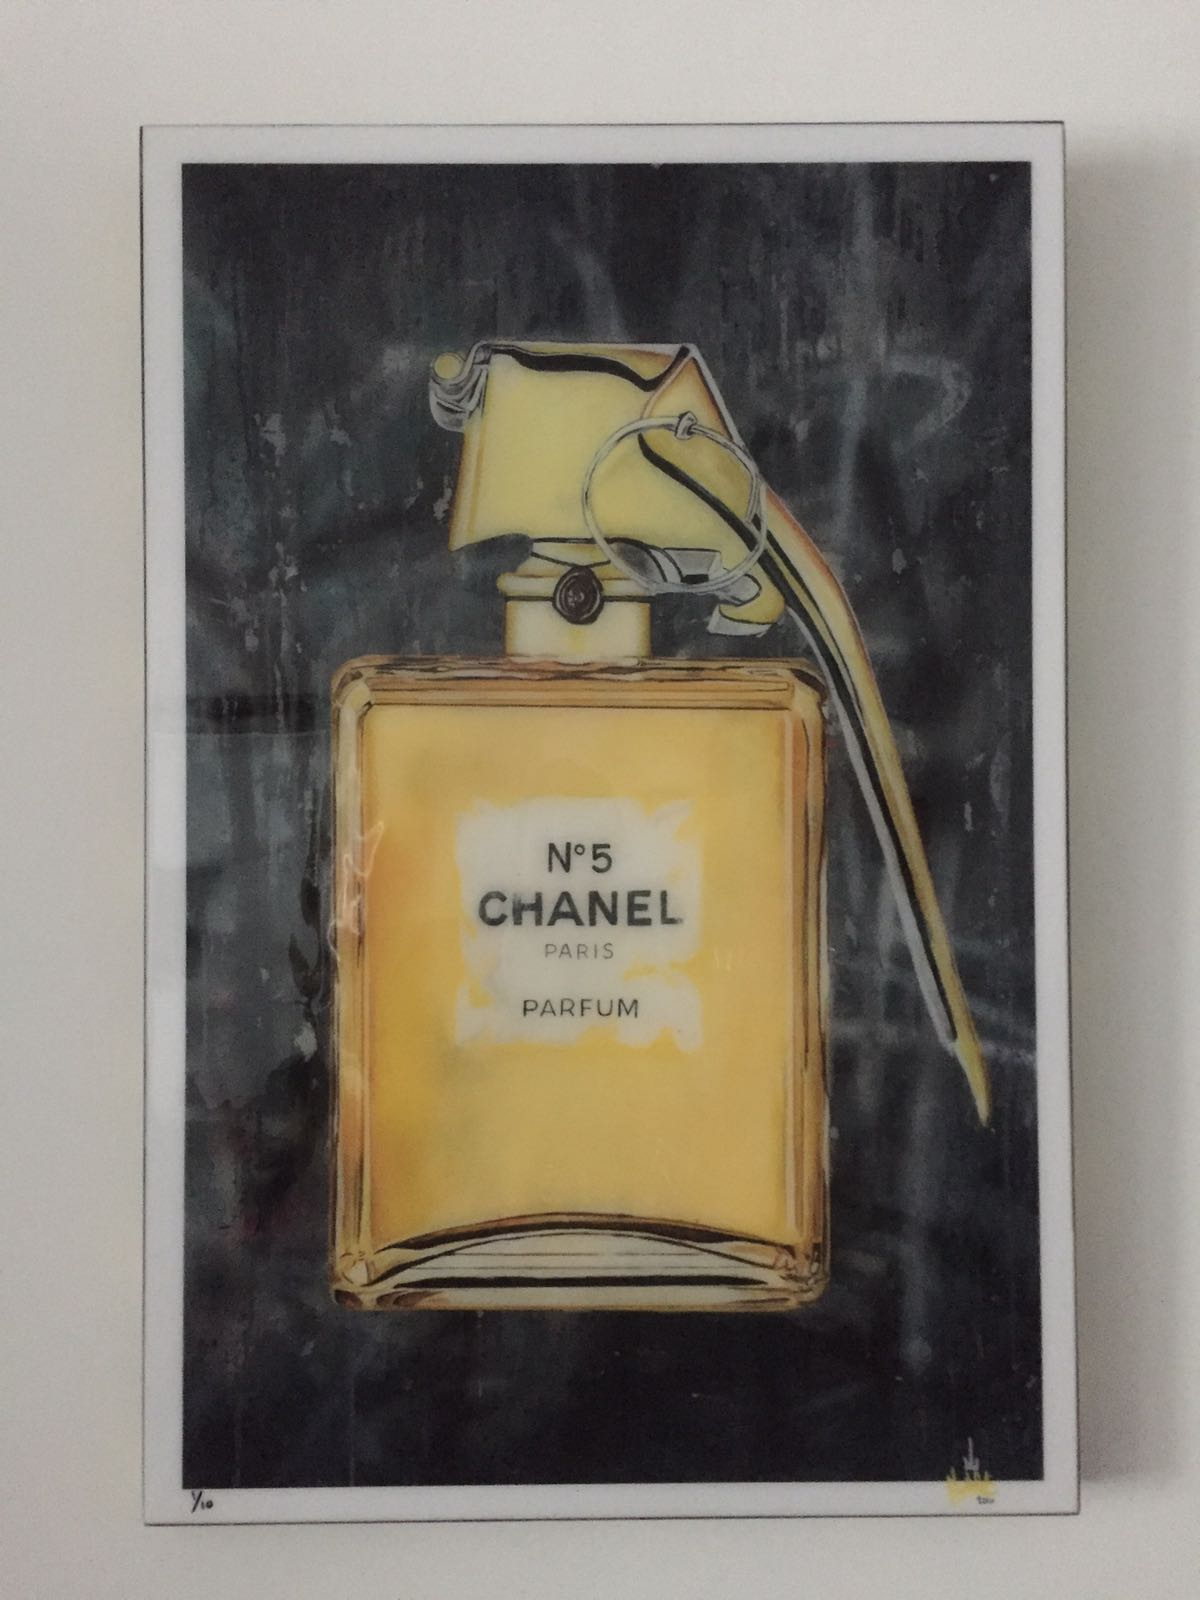 Chanel print on box